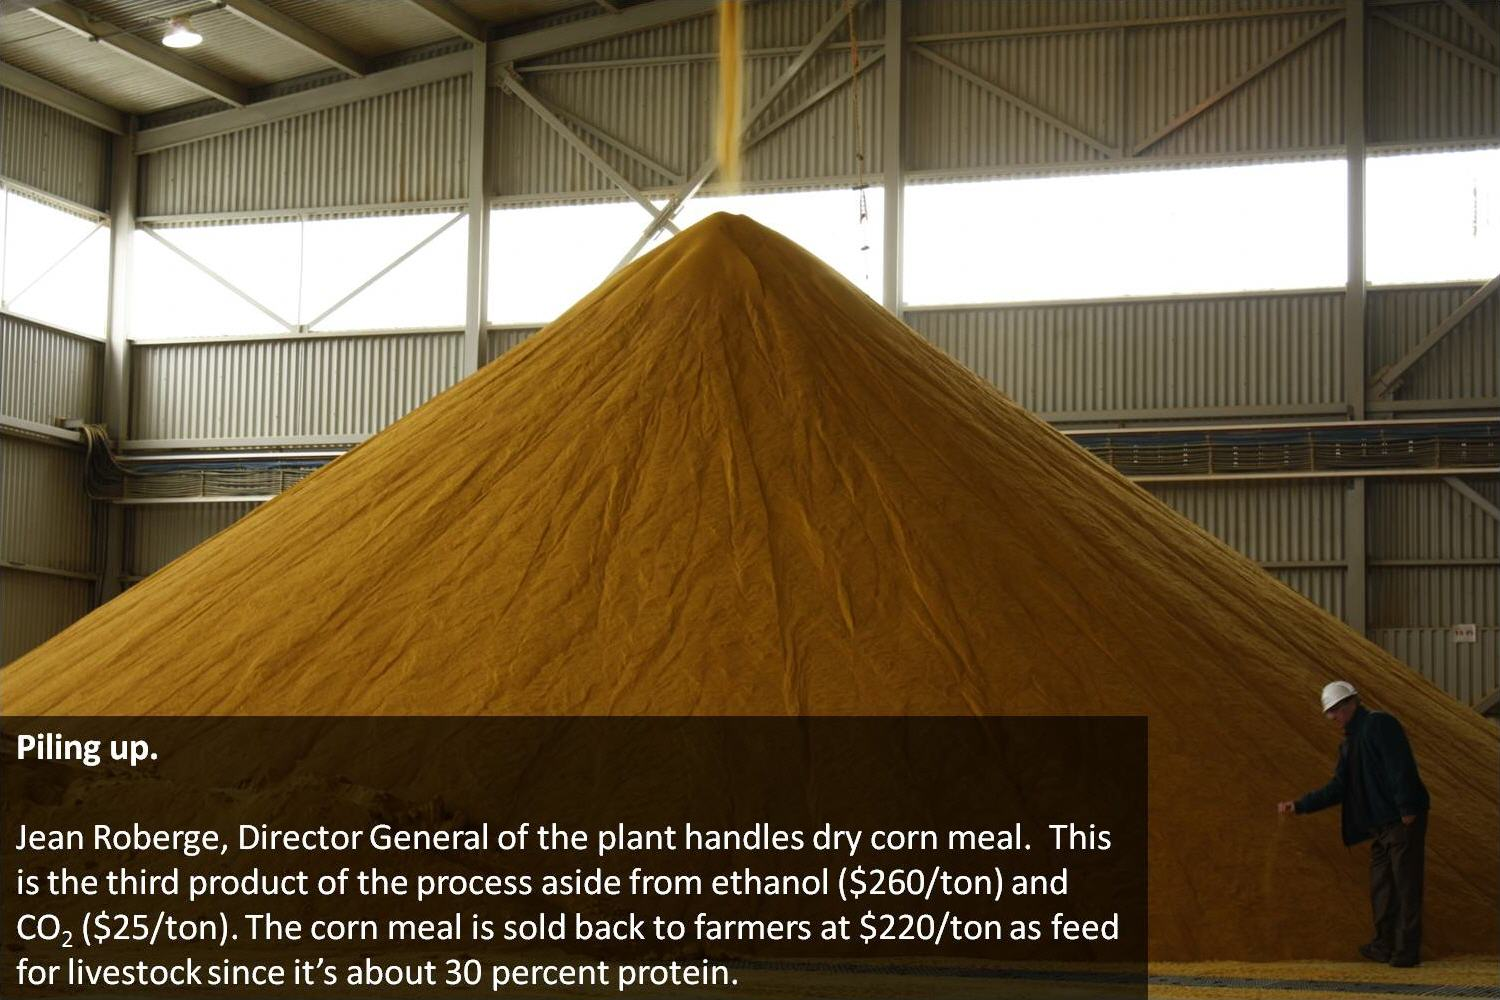 Giant pile of corn meal at Greenfield Ethanol